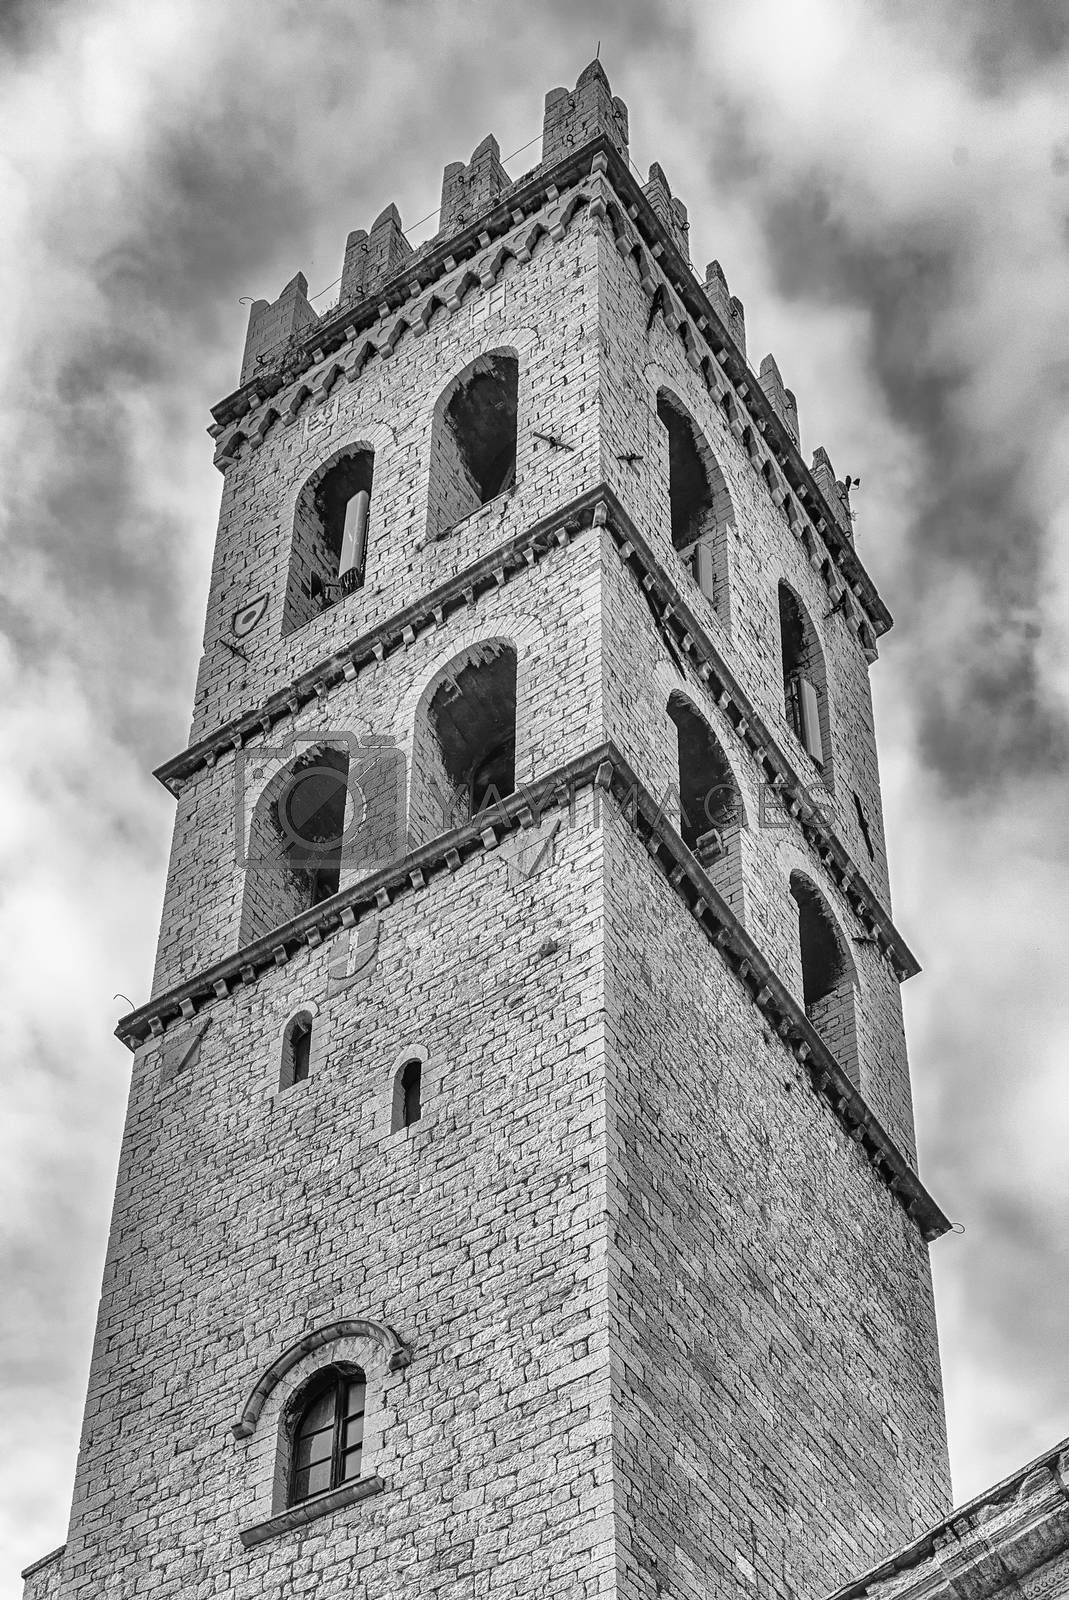 Ancient stone belltower of the Temple of Minerva, iconic landmark in Assisi, Italy